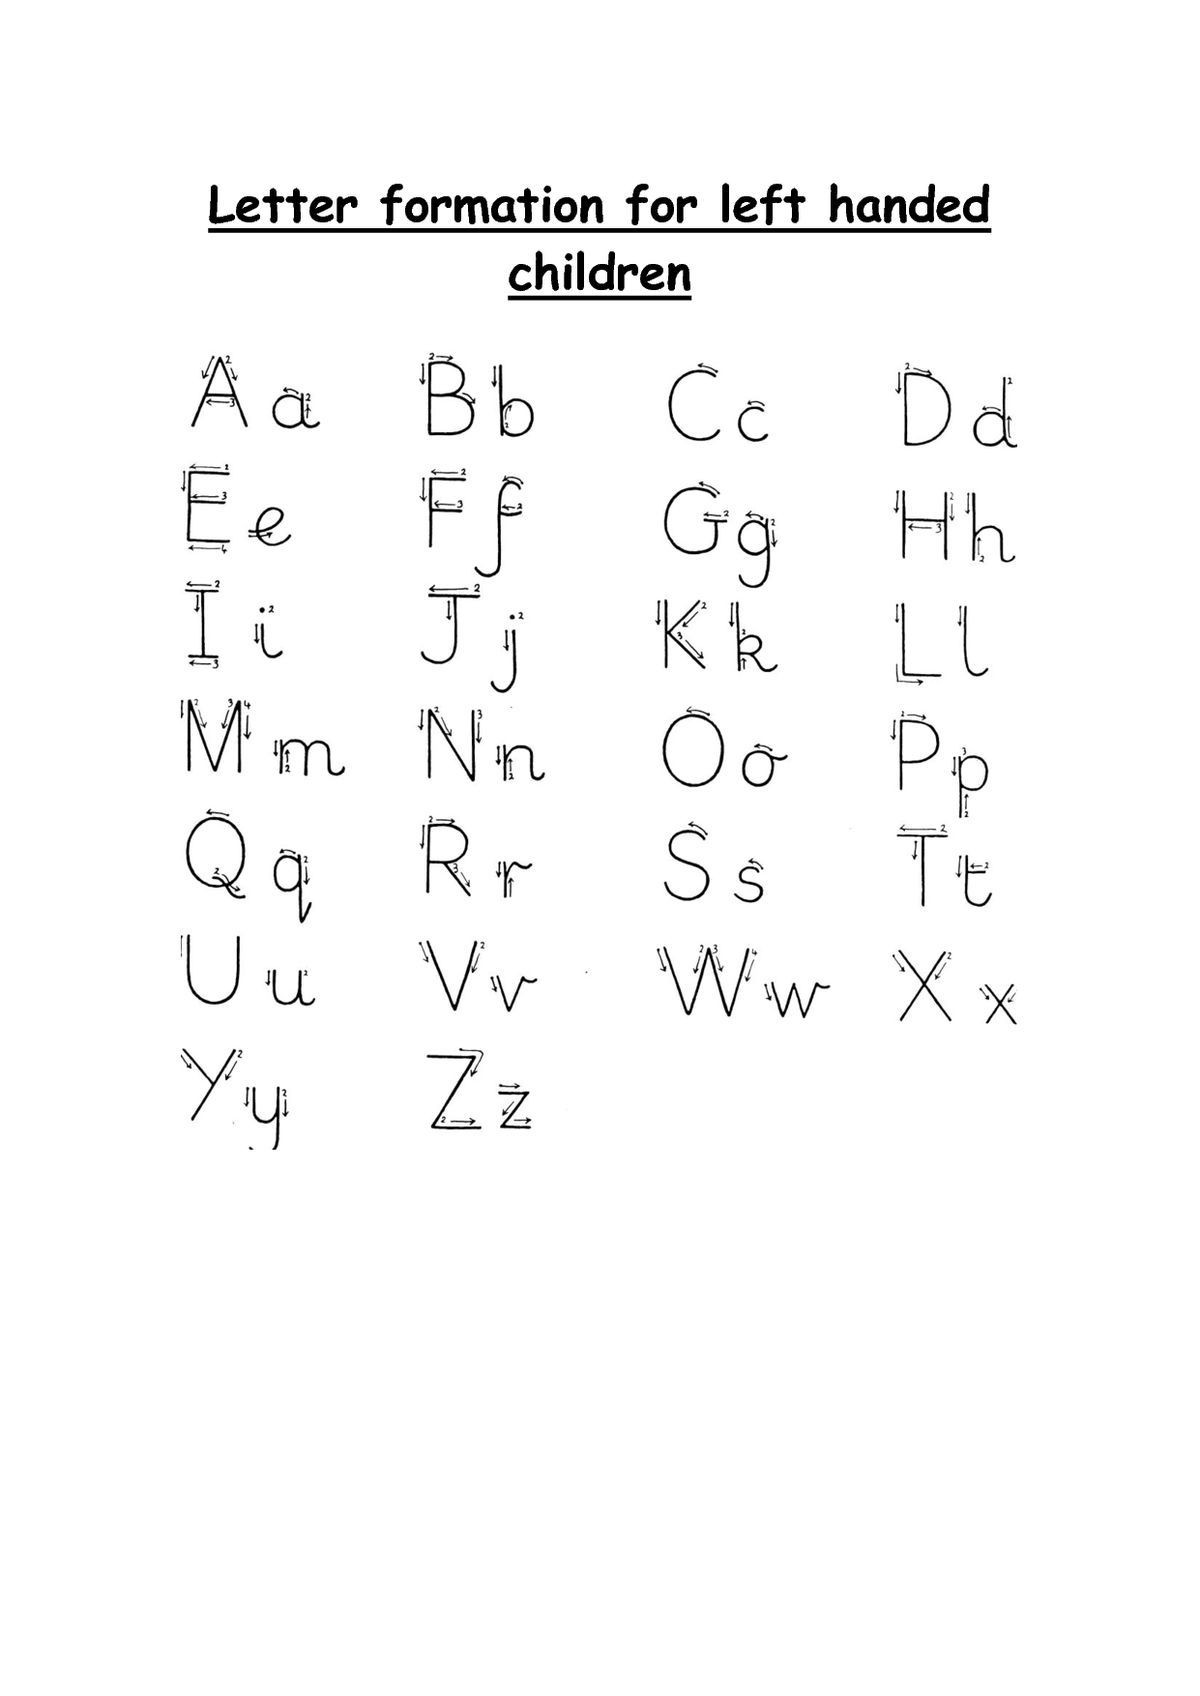 Handwriting without Tears Worksheets Left Handed Letter formation